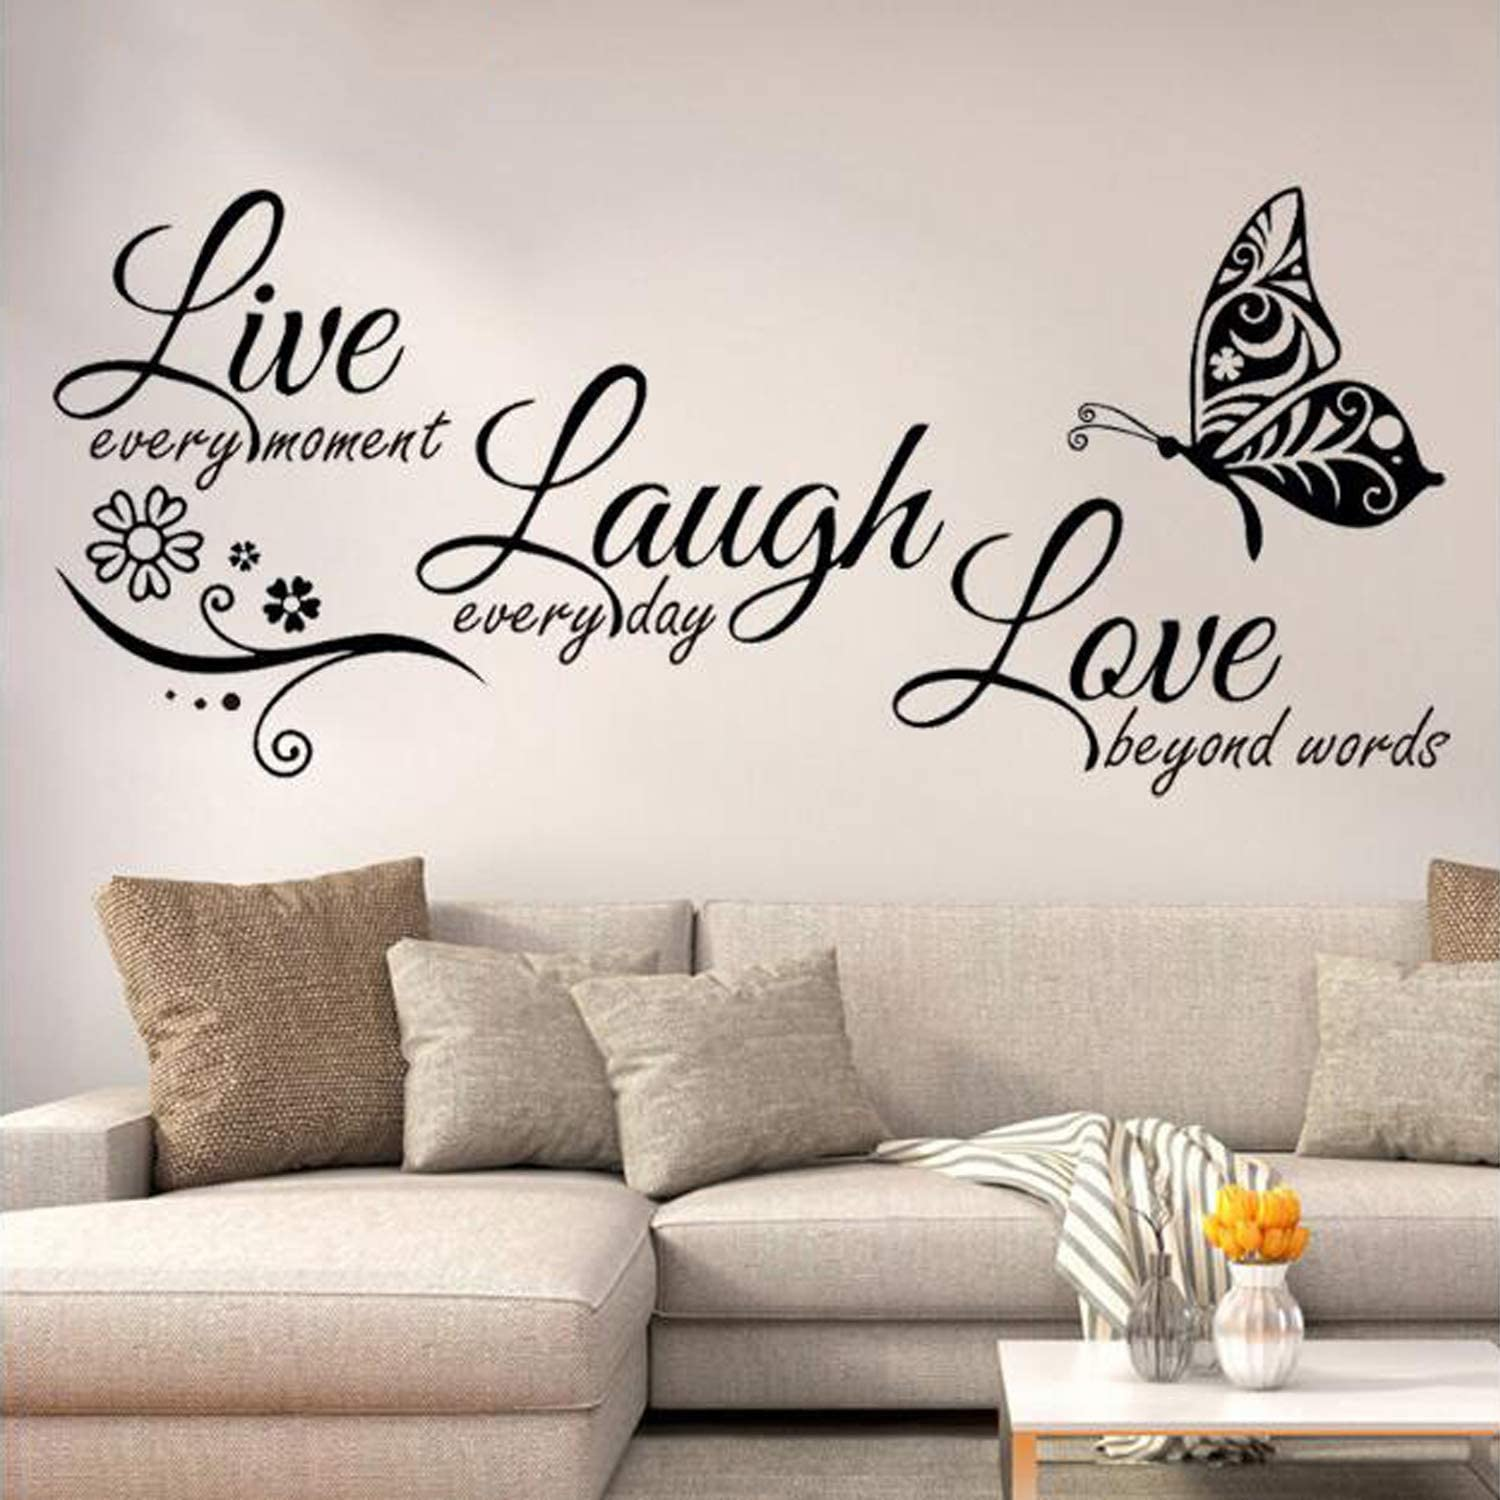 Amazon Com Yinasi Inspirational Quotes Wall Decal Removable Vinyl Art Decoration For Home Living Room Bedroom Nursery Room Classroom Wall Decor Live Every Moment Laugh Every Day Love Beyond Words Kitchen Dining